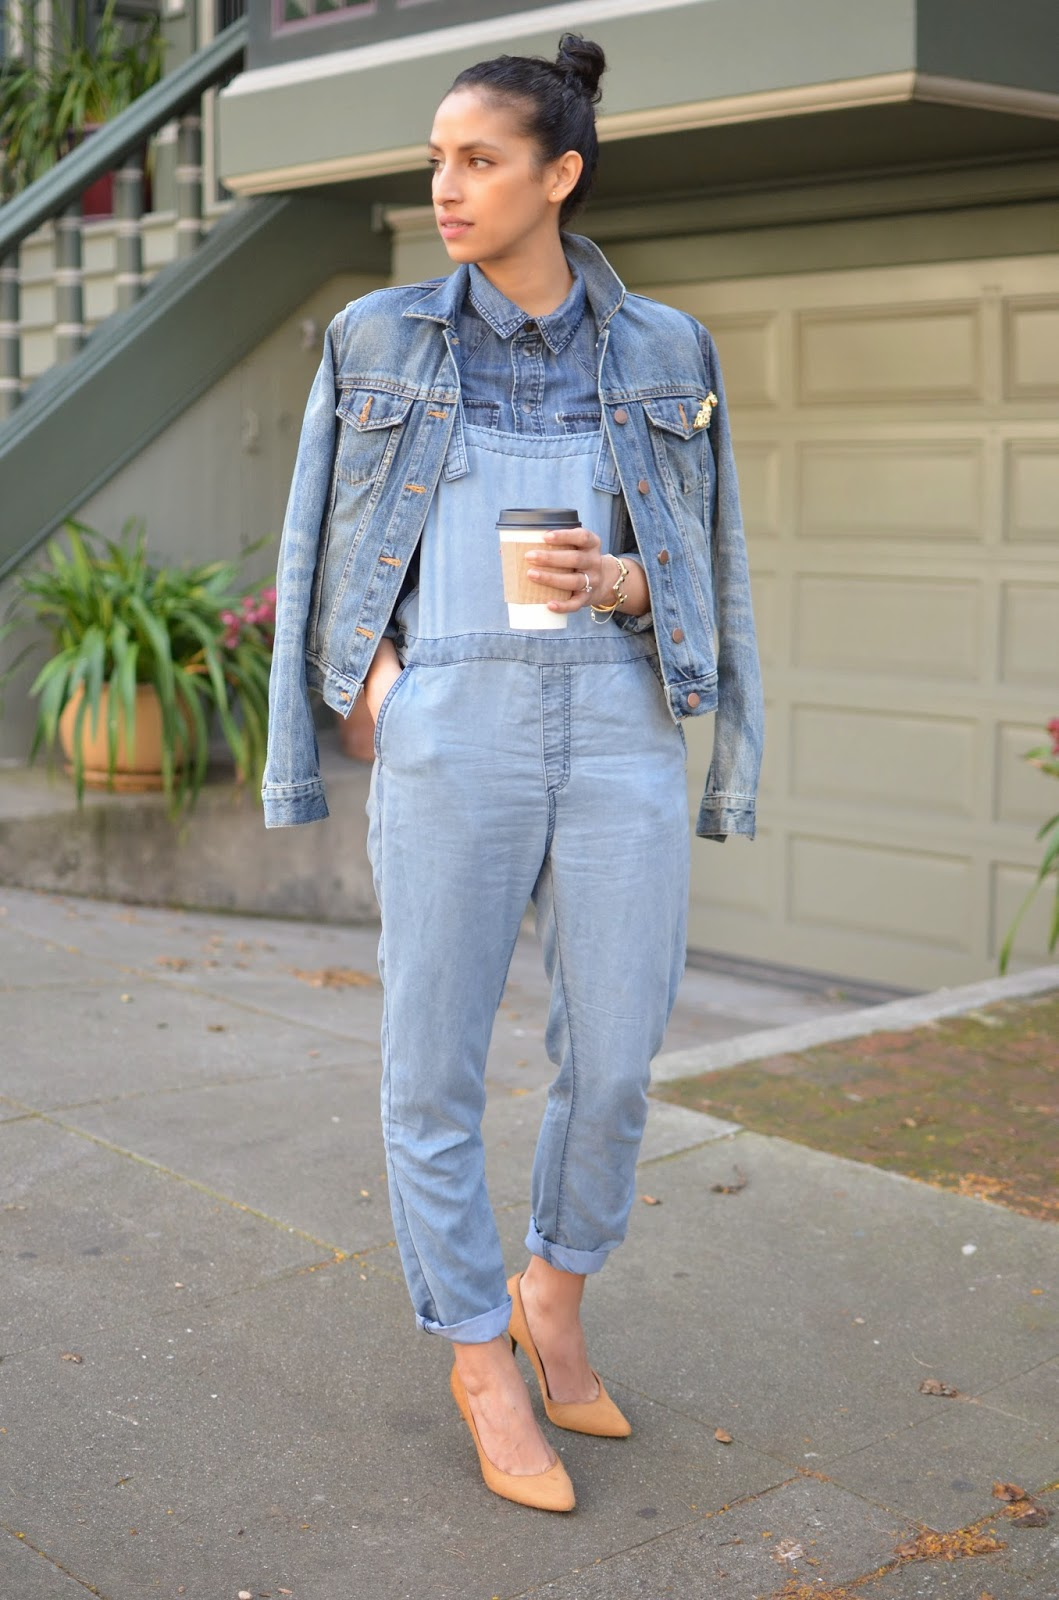 denim on denim, all denim, blue denim, how to wear all denim, how to style overalls, Obey Alexia overalls, Gap denim jacket, Madewell chambray denim top, 2 Bandits Peaking cuff